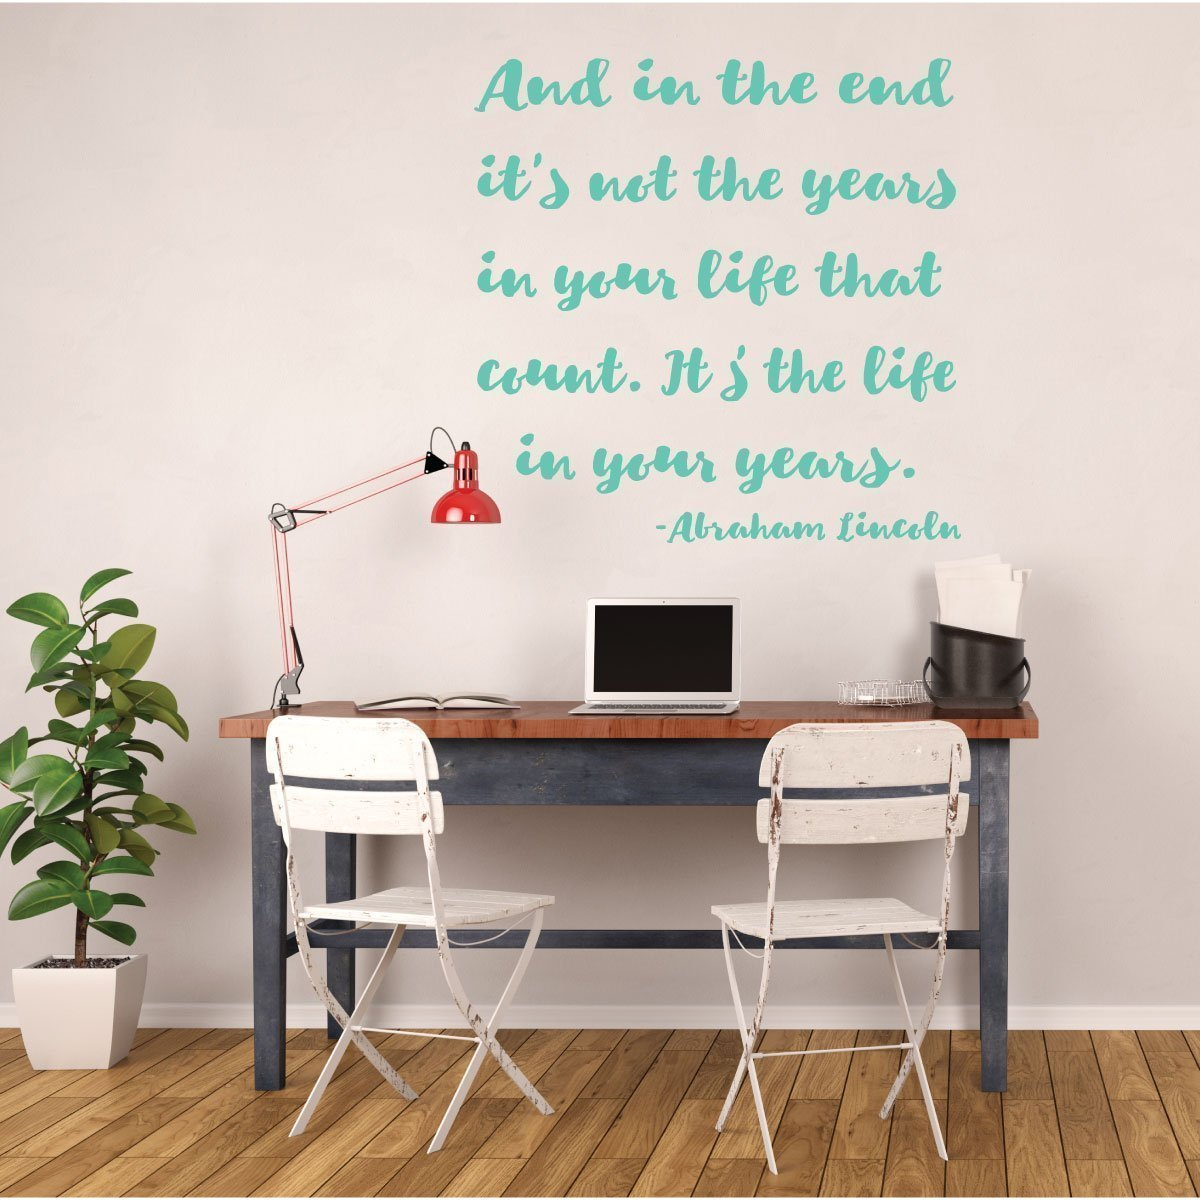 Inspirational Quotes Wall Sign Decor - Abraham Lincoln Quote - In the End - Motivational Wall Sign Vinyl Decal Decorations